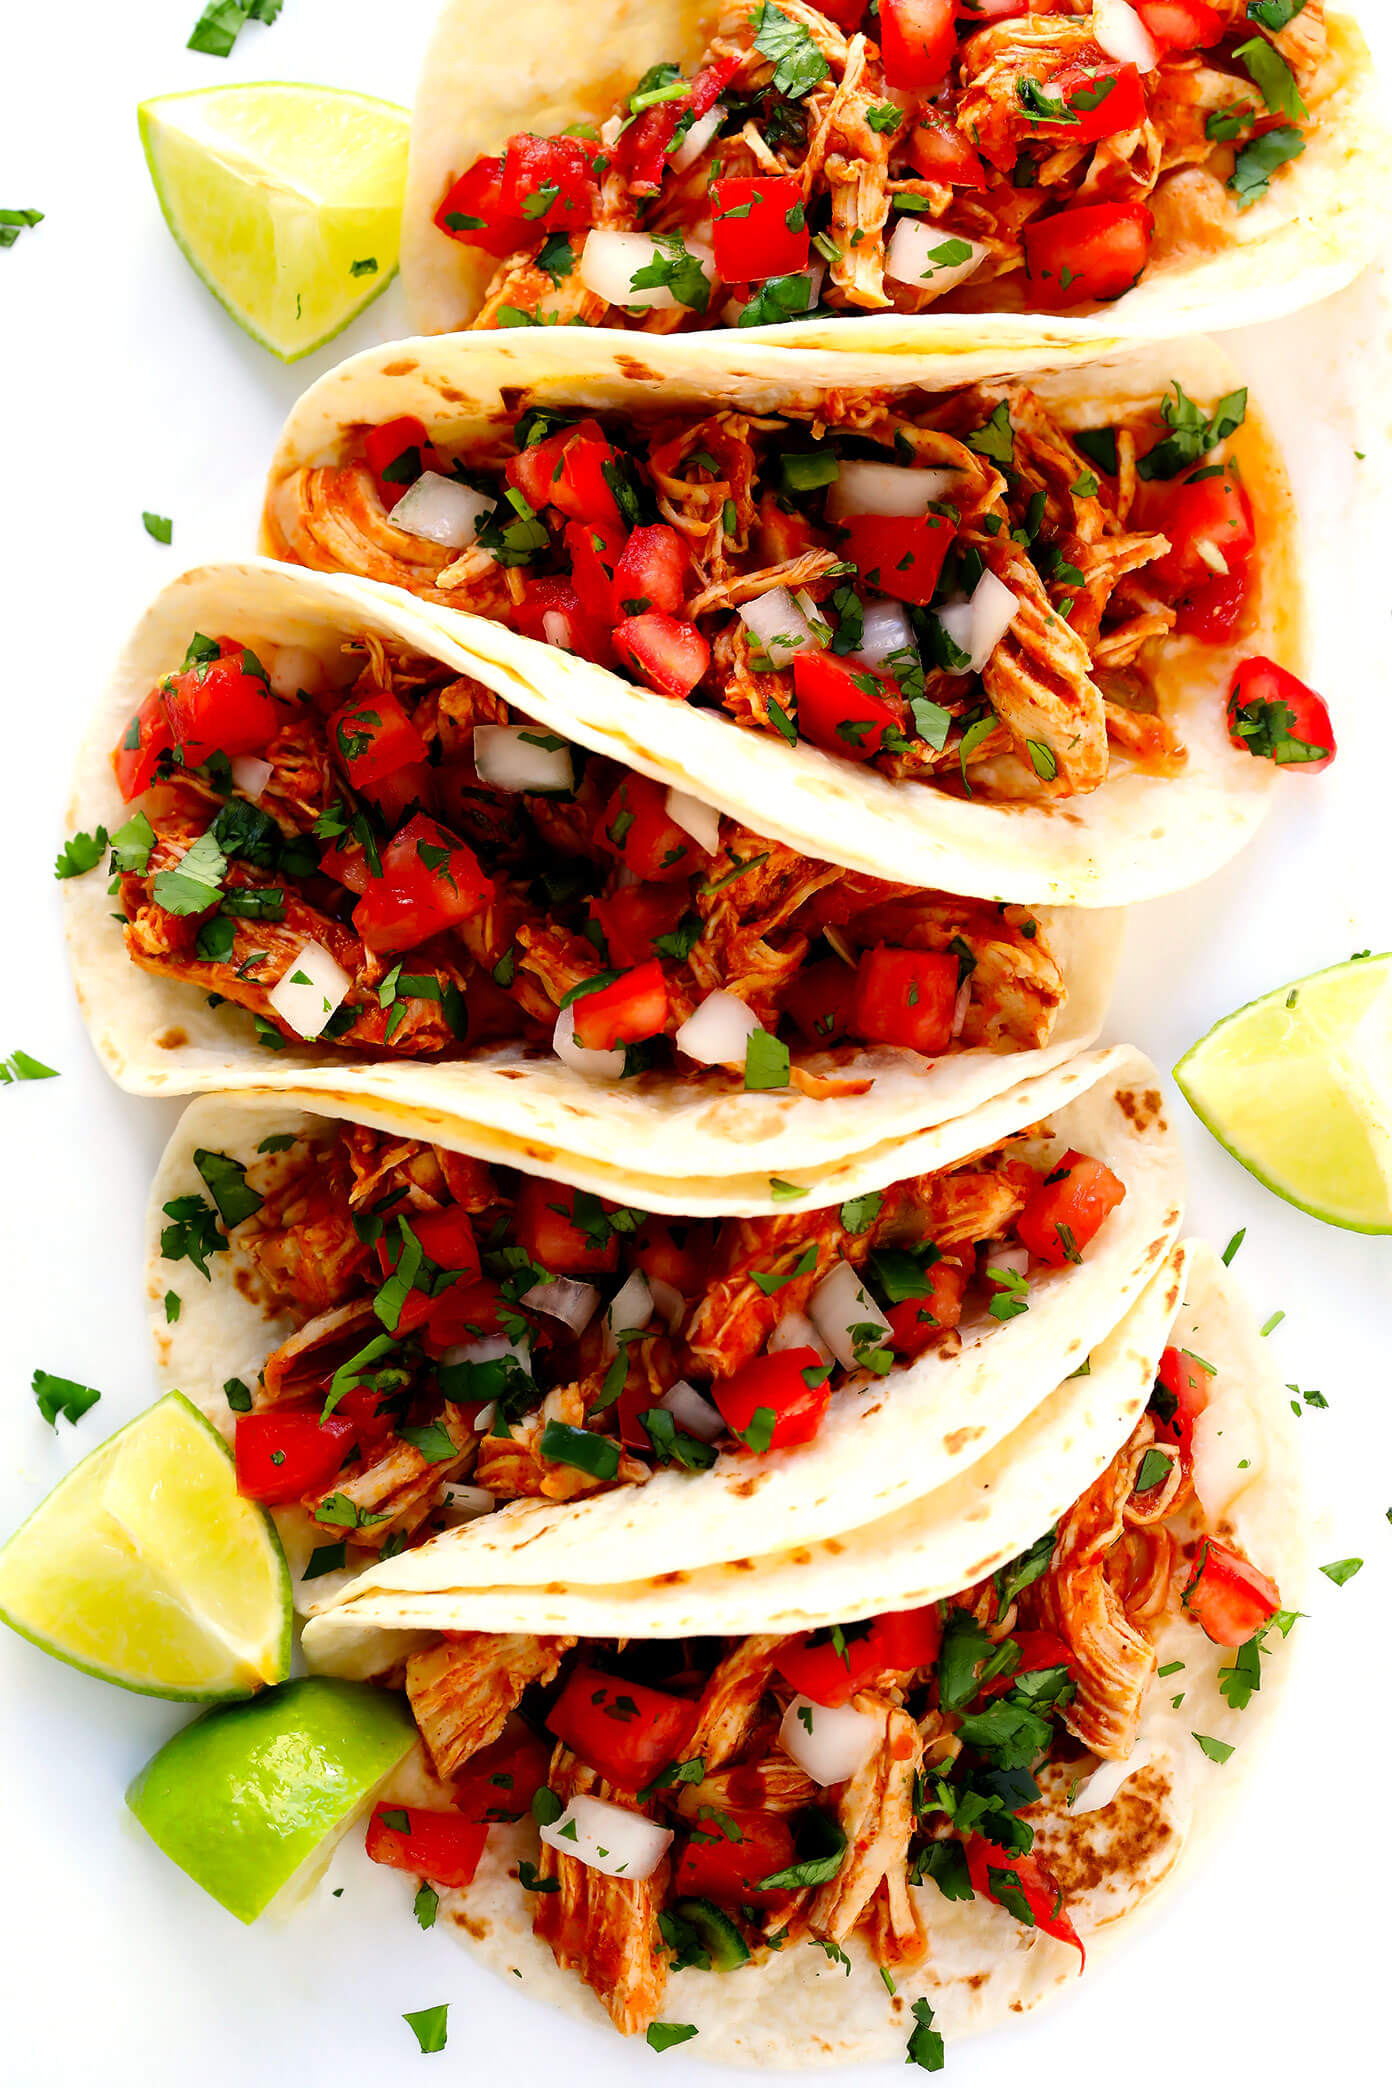 Mexican Chicken Tacos with Pico de Gallo